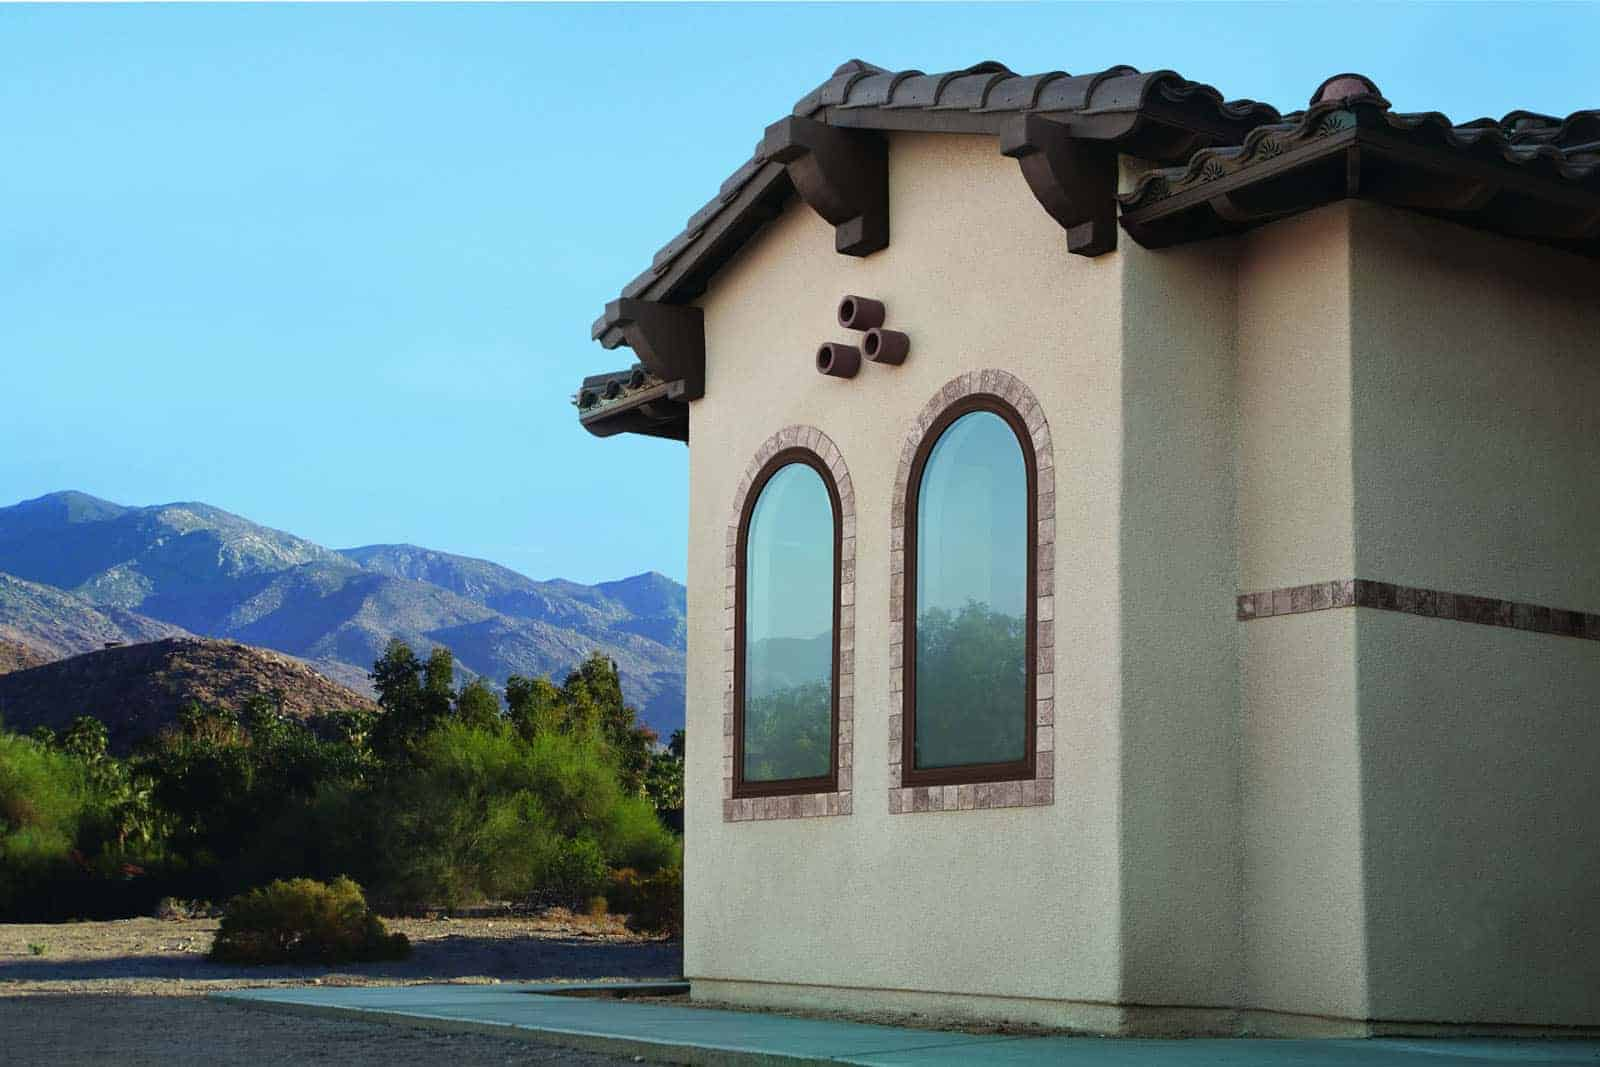 Arched fiberglass and composite windows on southern Utah home